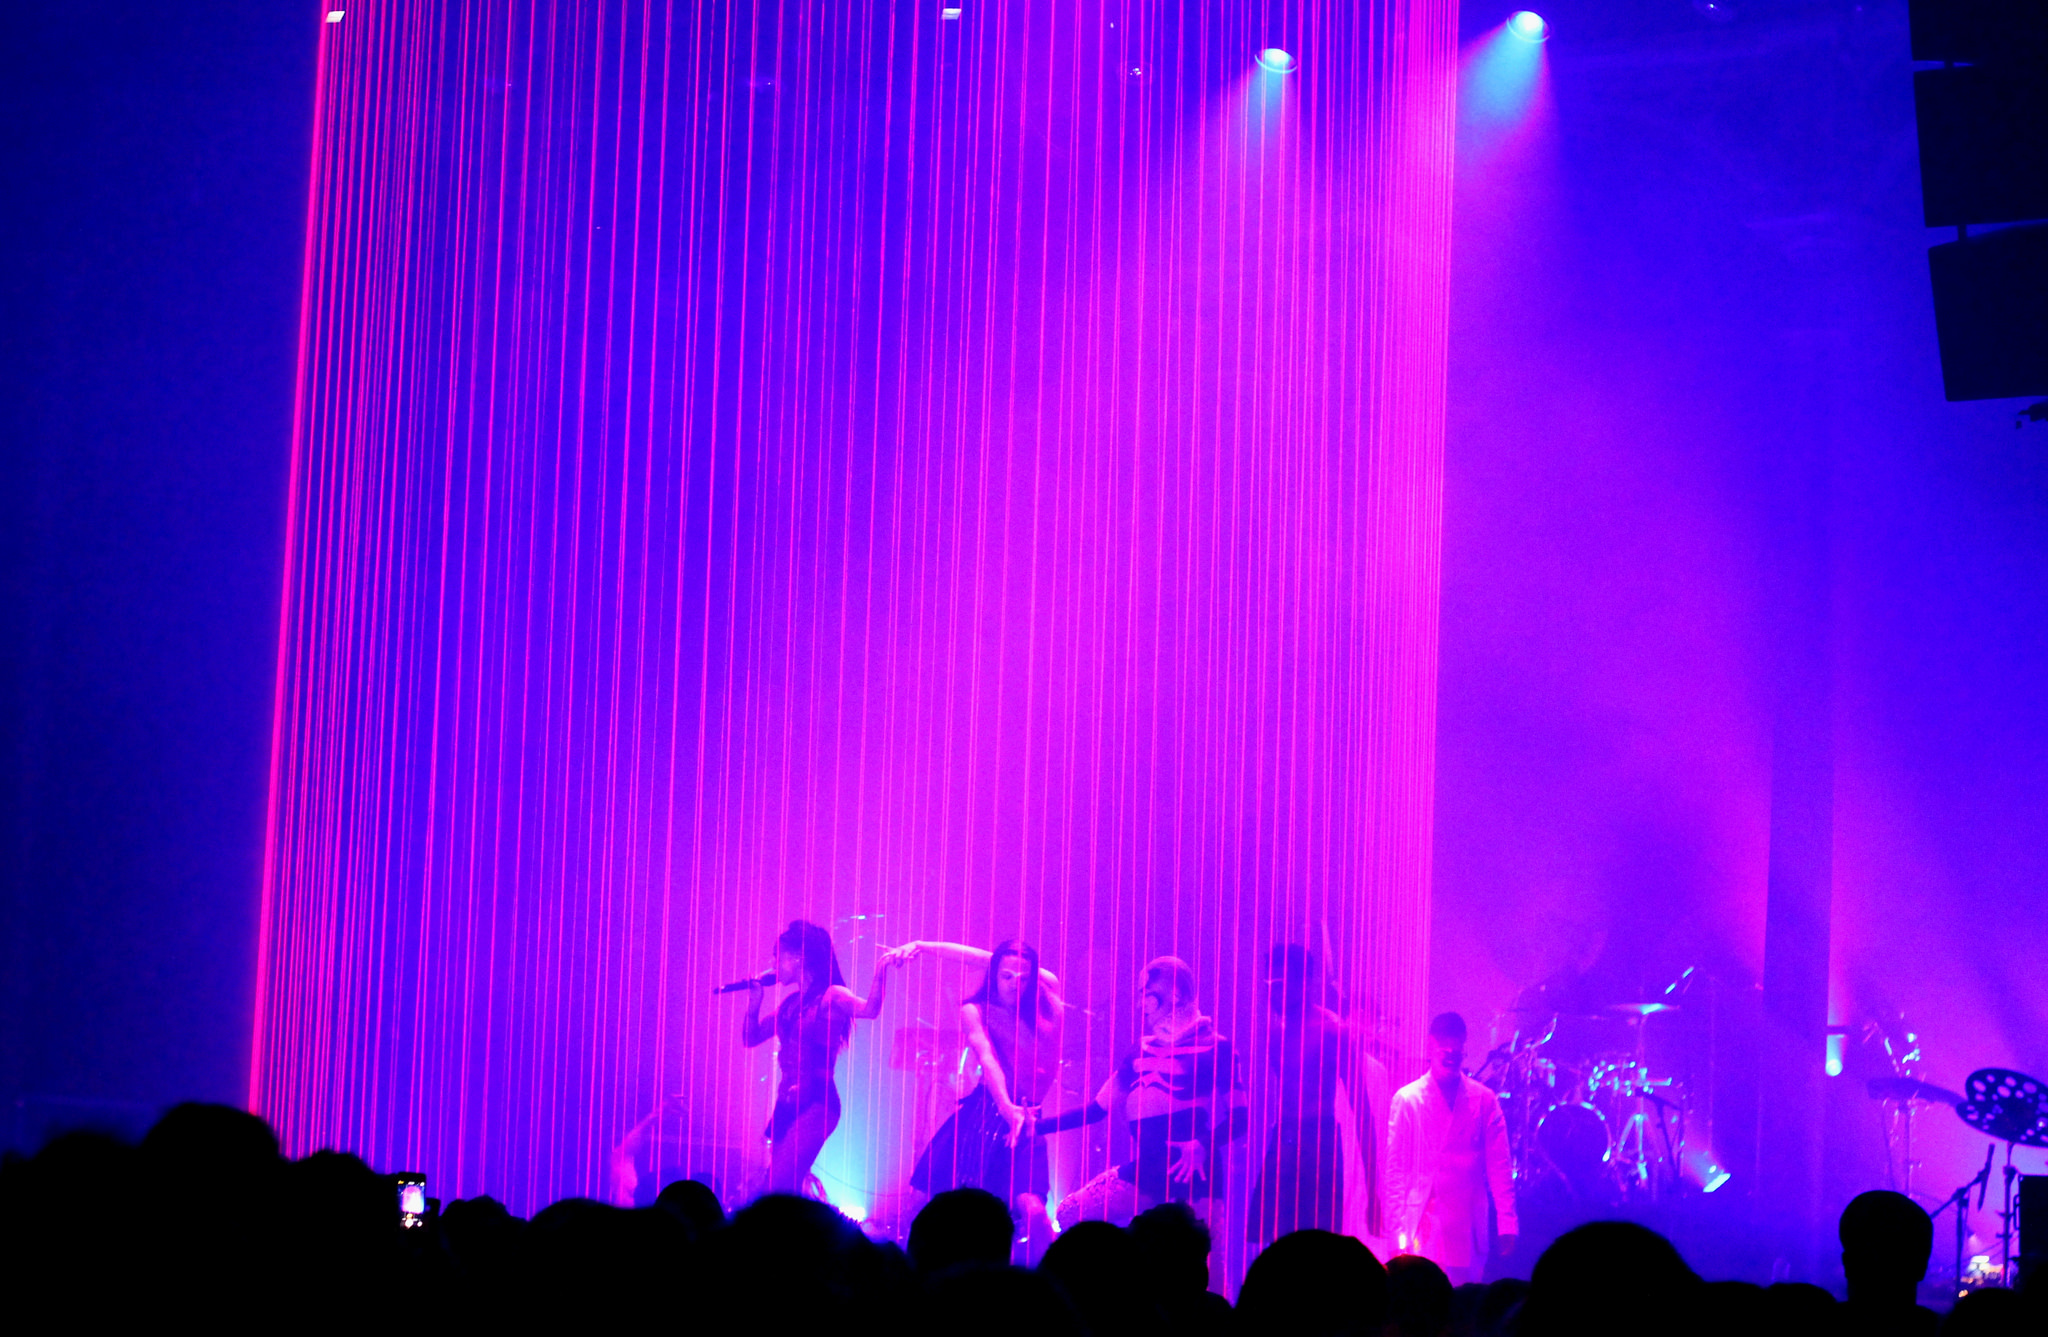 FKA Twigs performing at the Roundhouse [Flickr: werelostinmusic]